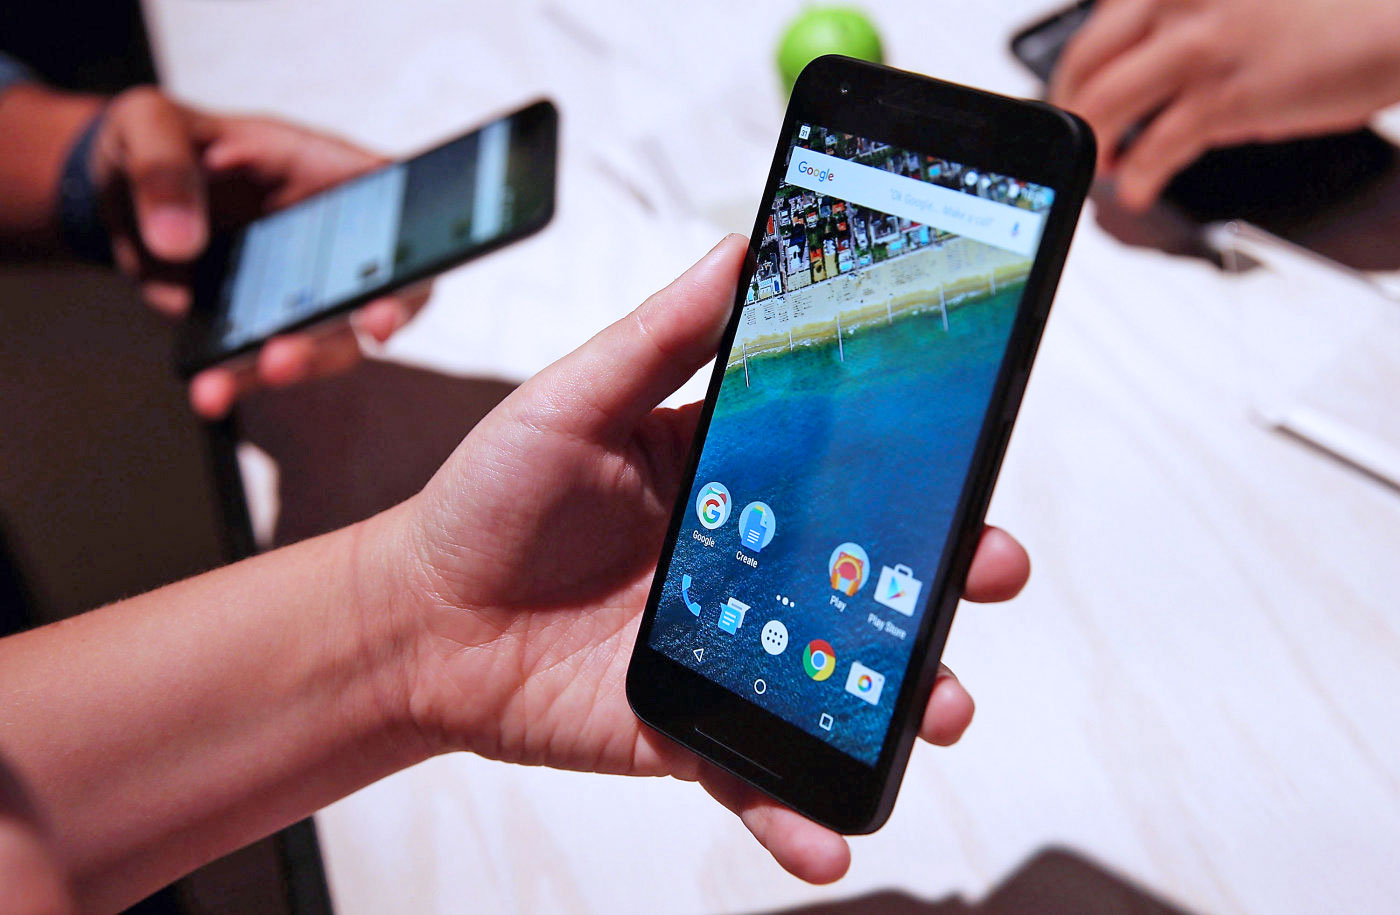 Google's Nexus update images save you from wiping your device